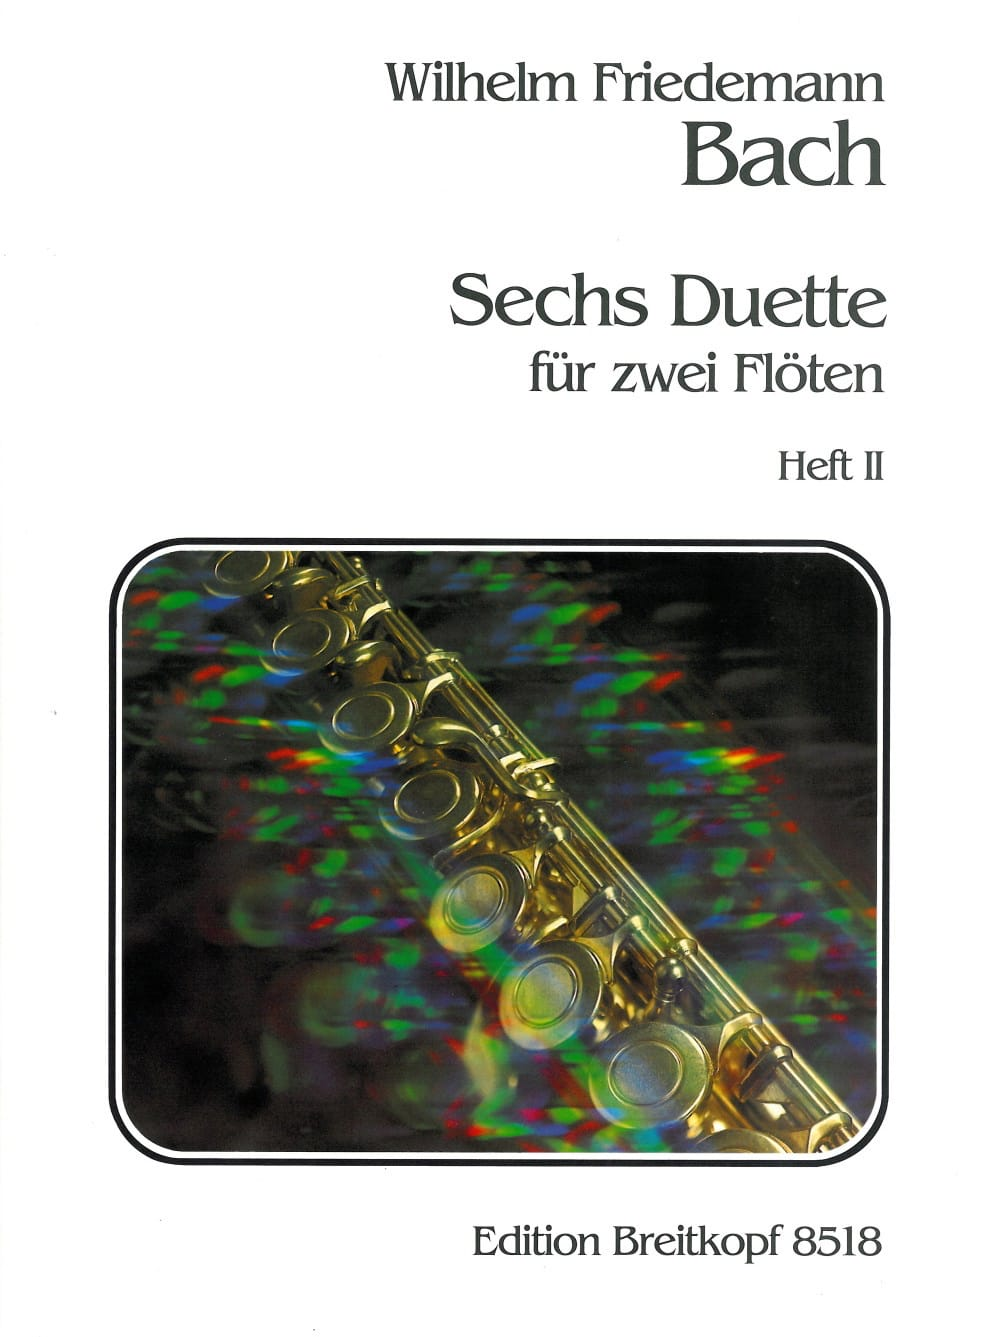 Wilhelm Friedemann Bach - 6 Duette, Heft 2 - 2 Flöten - Partition - di-arezzo.co.uk